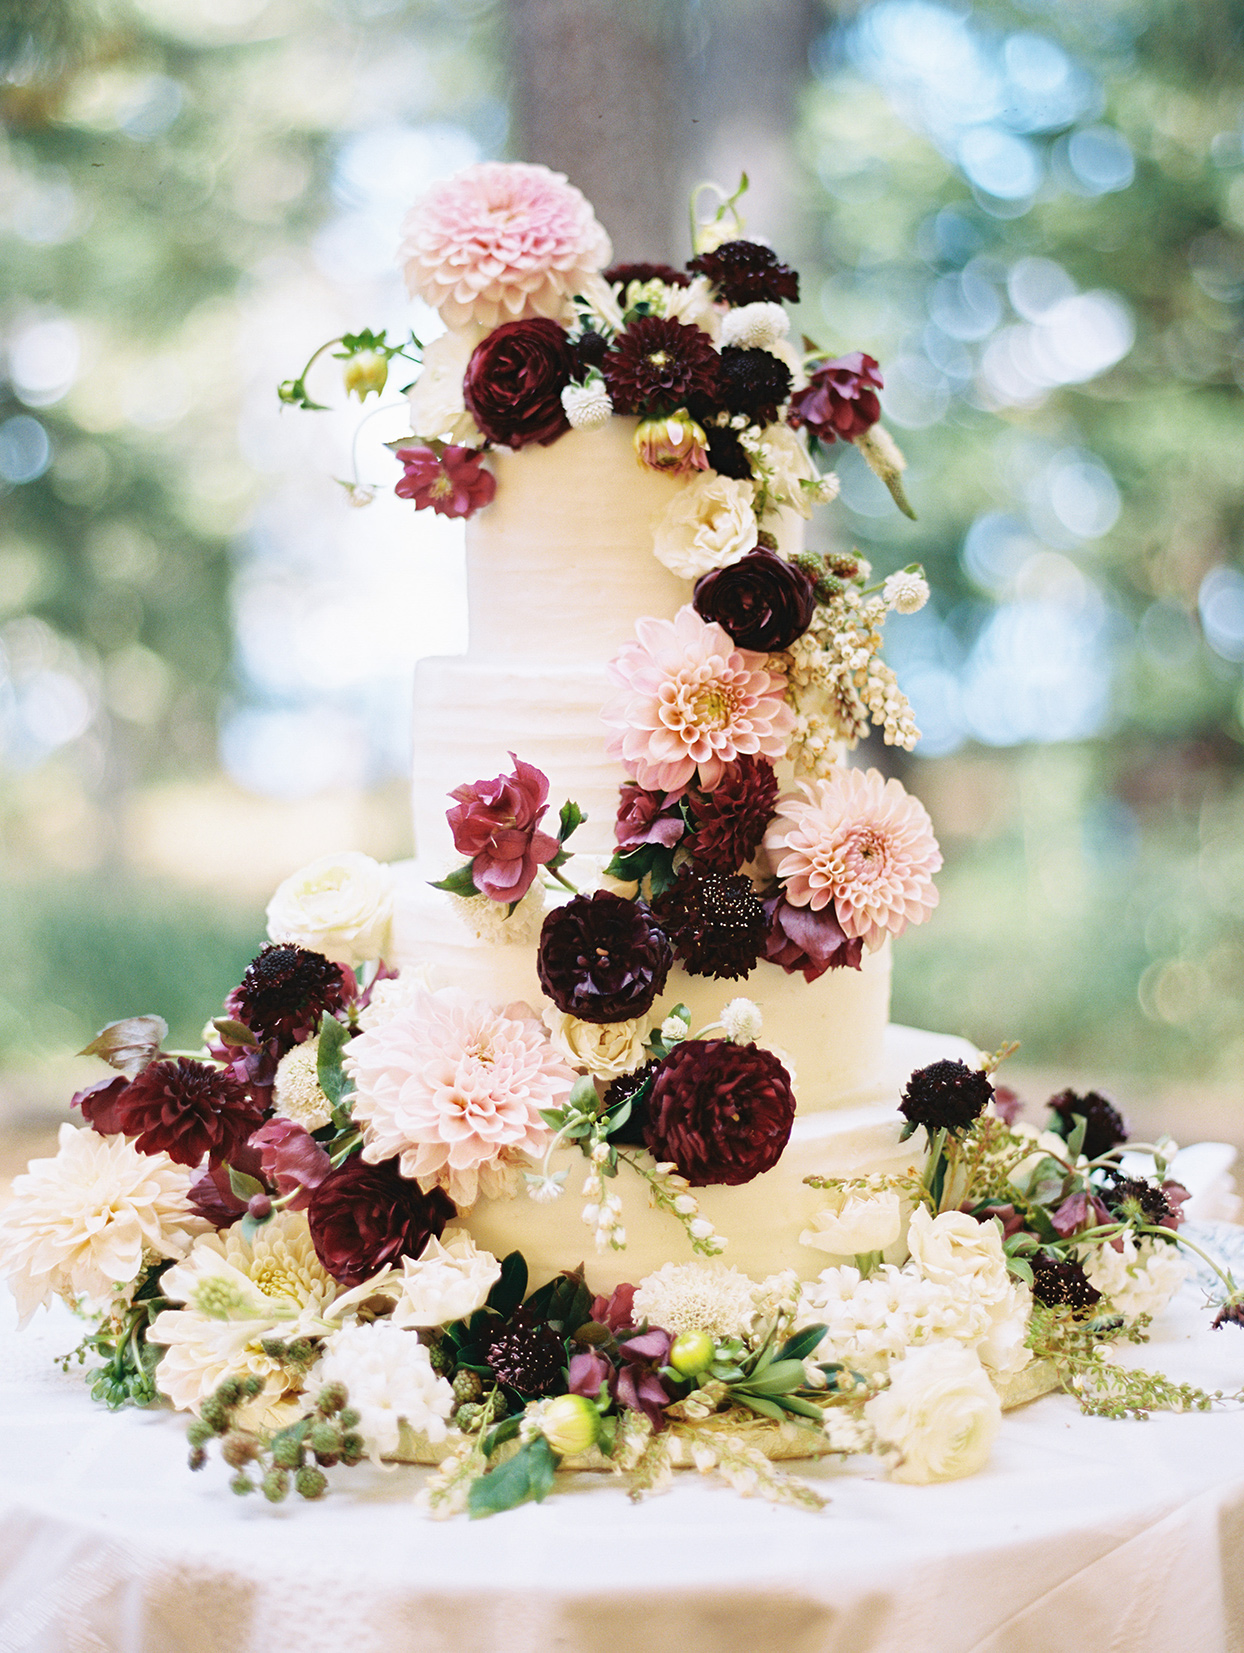 white wedding cake with garland of purple, burgundy and cream flowers